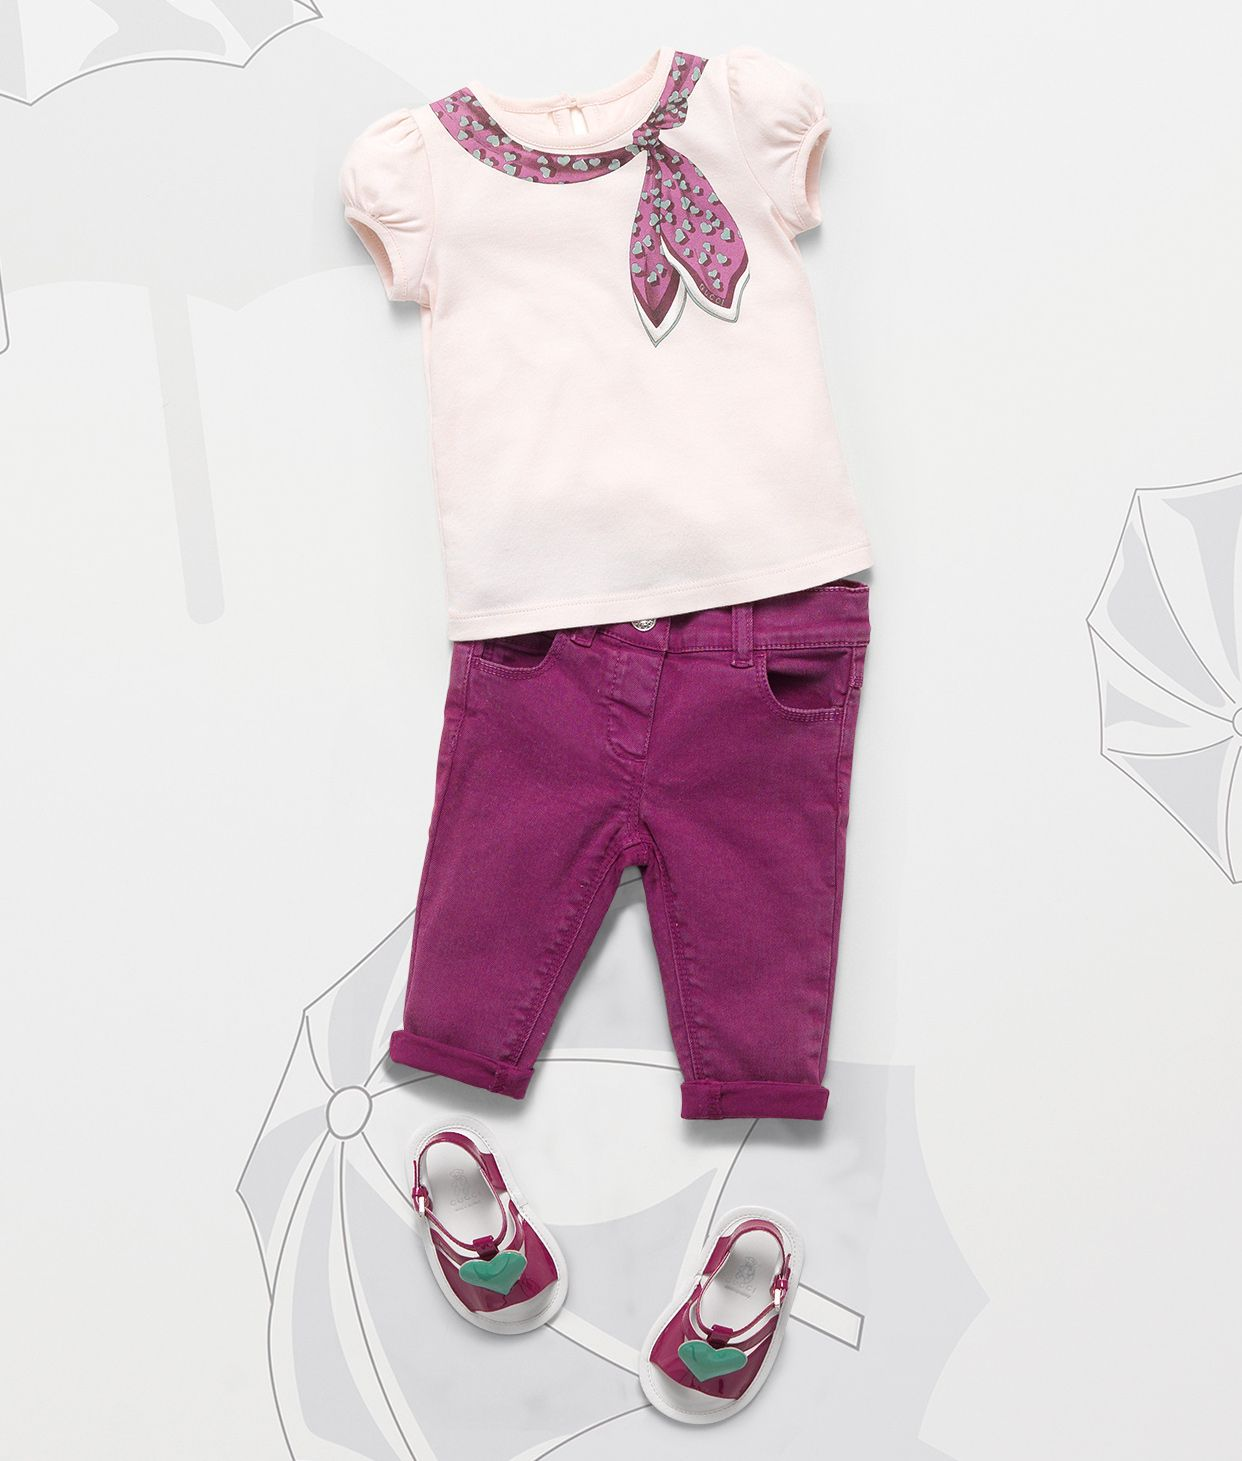 67ff9822361 Gucci Children's SS 2014 Collection: Heartbeat Scarf Print T-Shirt with  Denim Rolled Pant and Baby Patent Leather Sandal